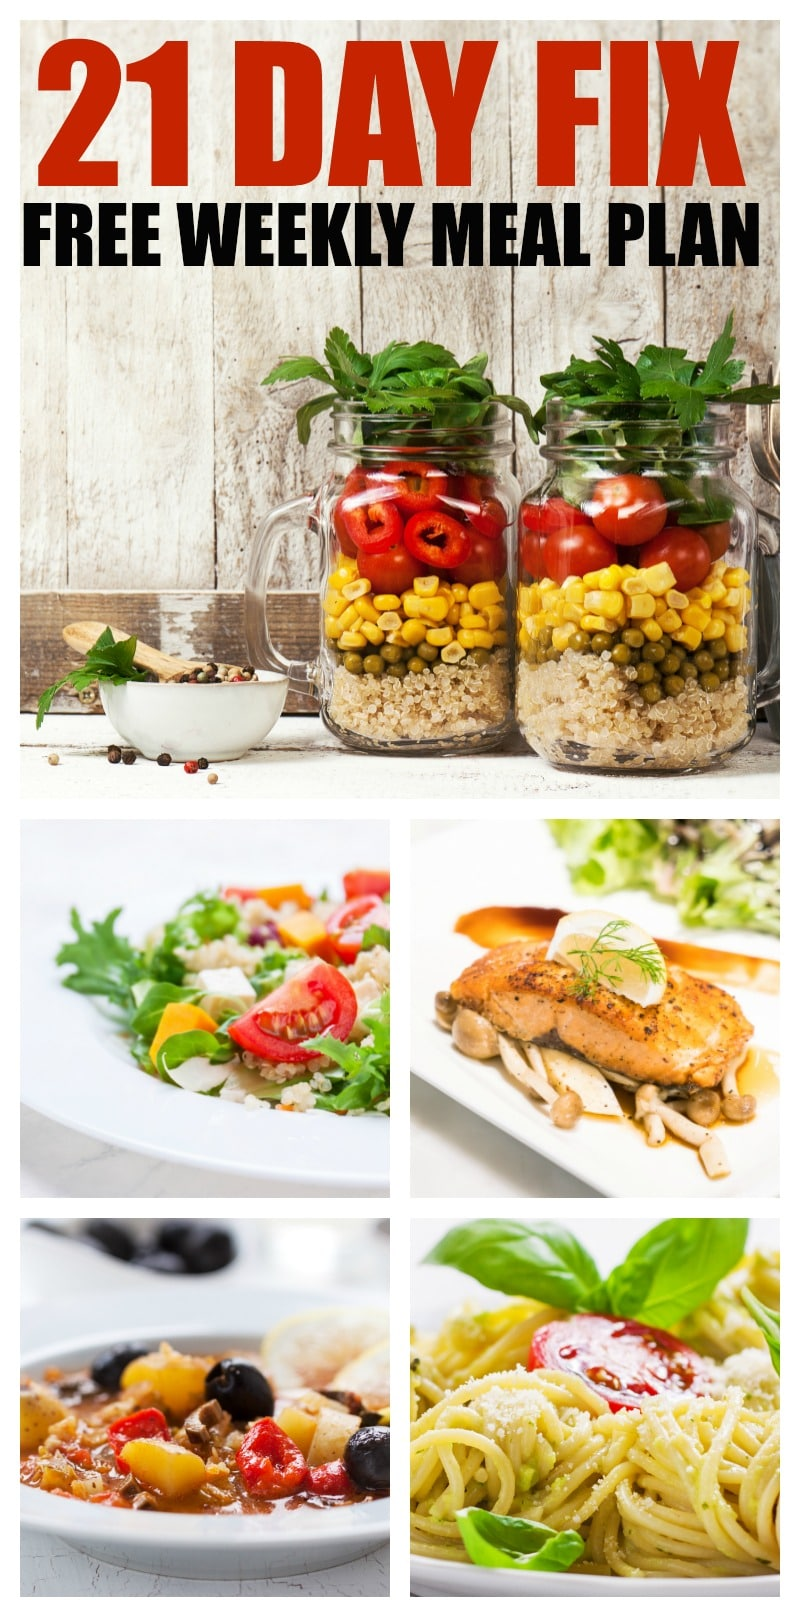 21 day Fix Meal Plan - meal plan is designed to fit 1500 – 1800 calories a day and offers breakfast, lunch, dinner and snack. Help to get jumpstarted in 21 day fix